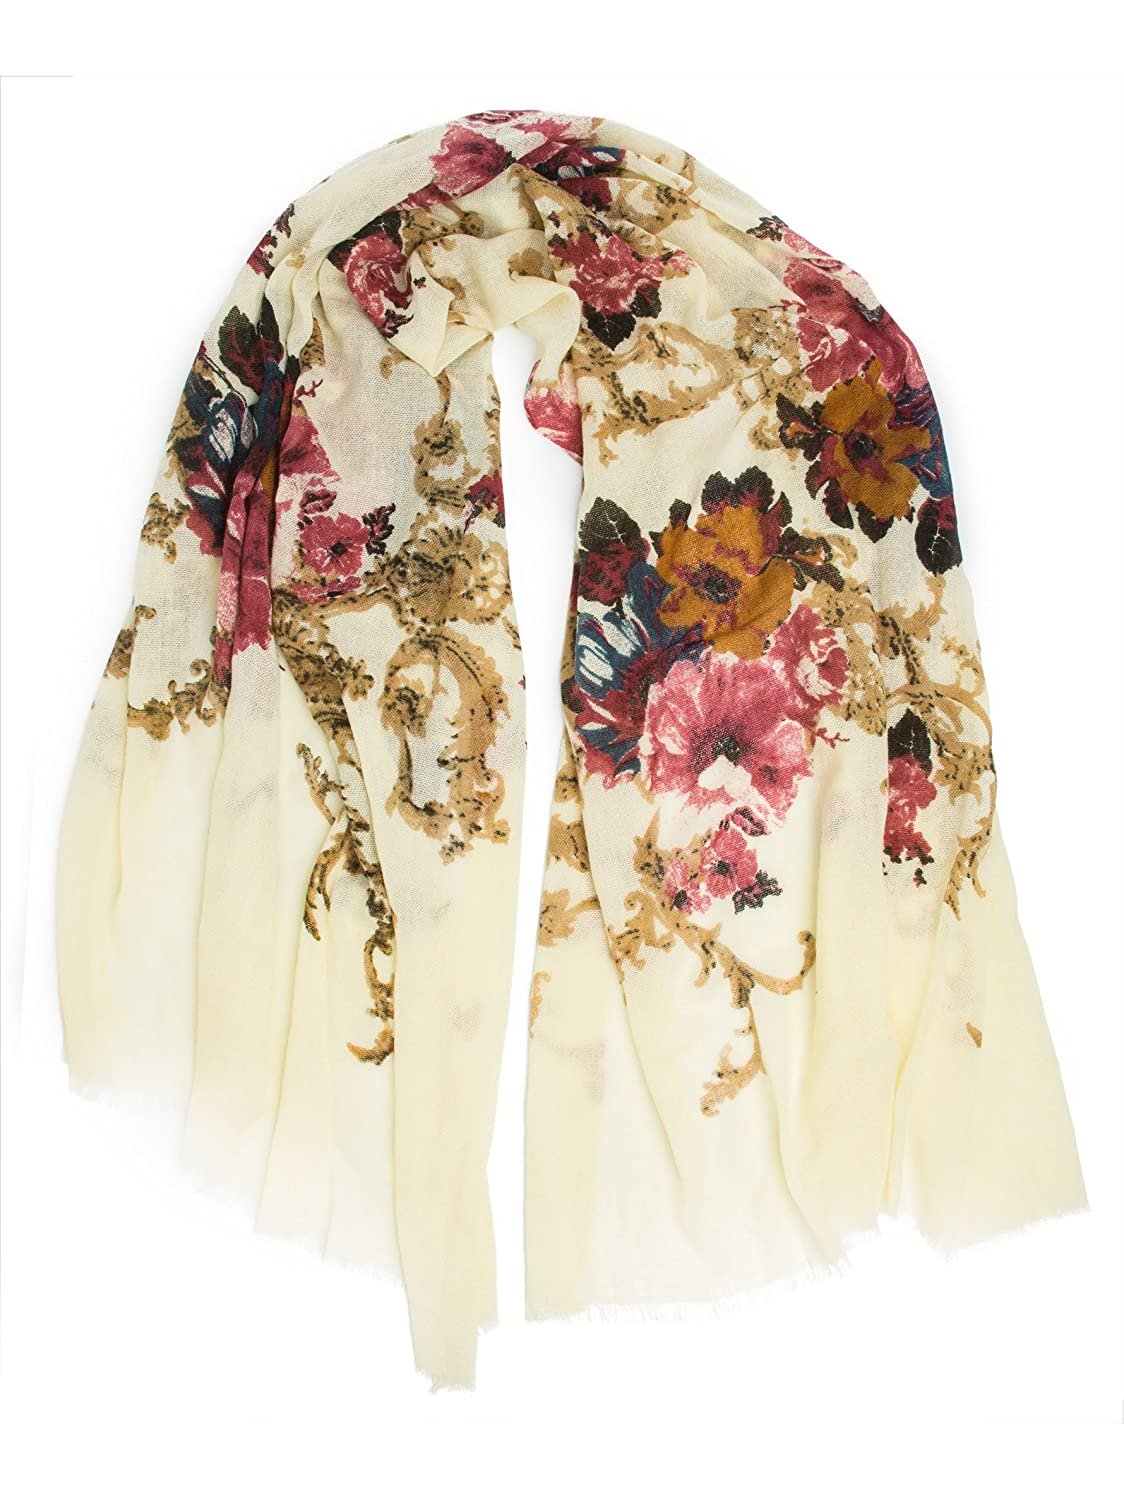 Vintage Scarf Styles -1920s to 1960s Eleanor blanket scarf oversized winter scarf floral scarf $26.95 AT vintagedancer.com